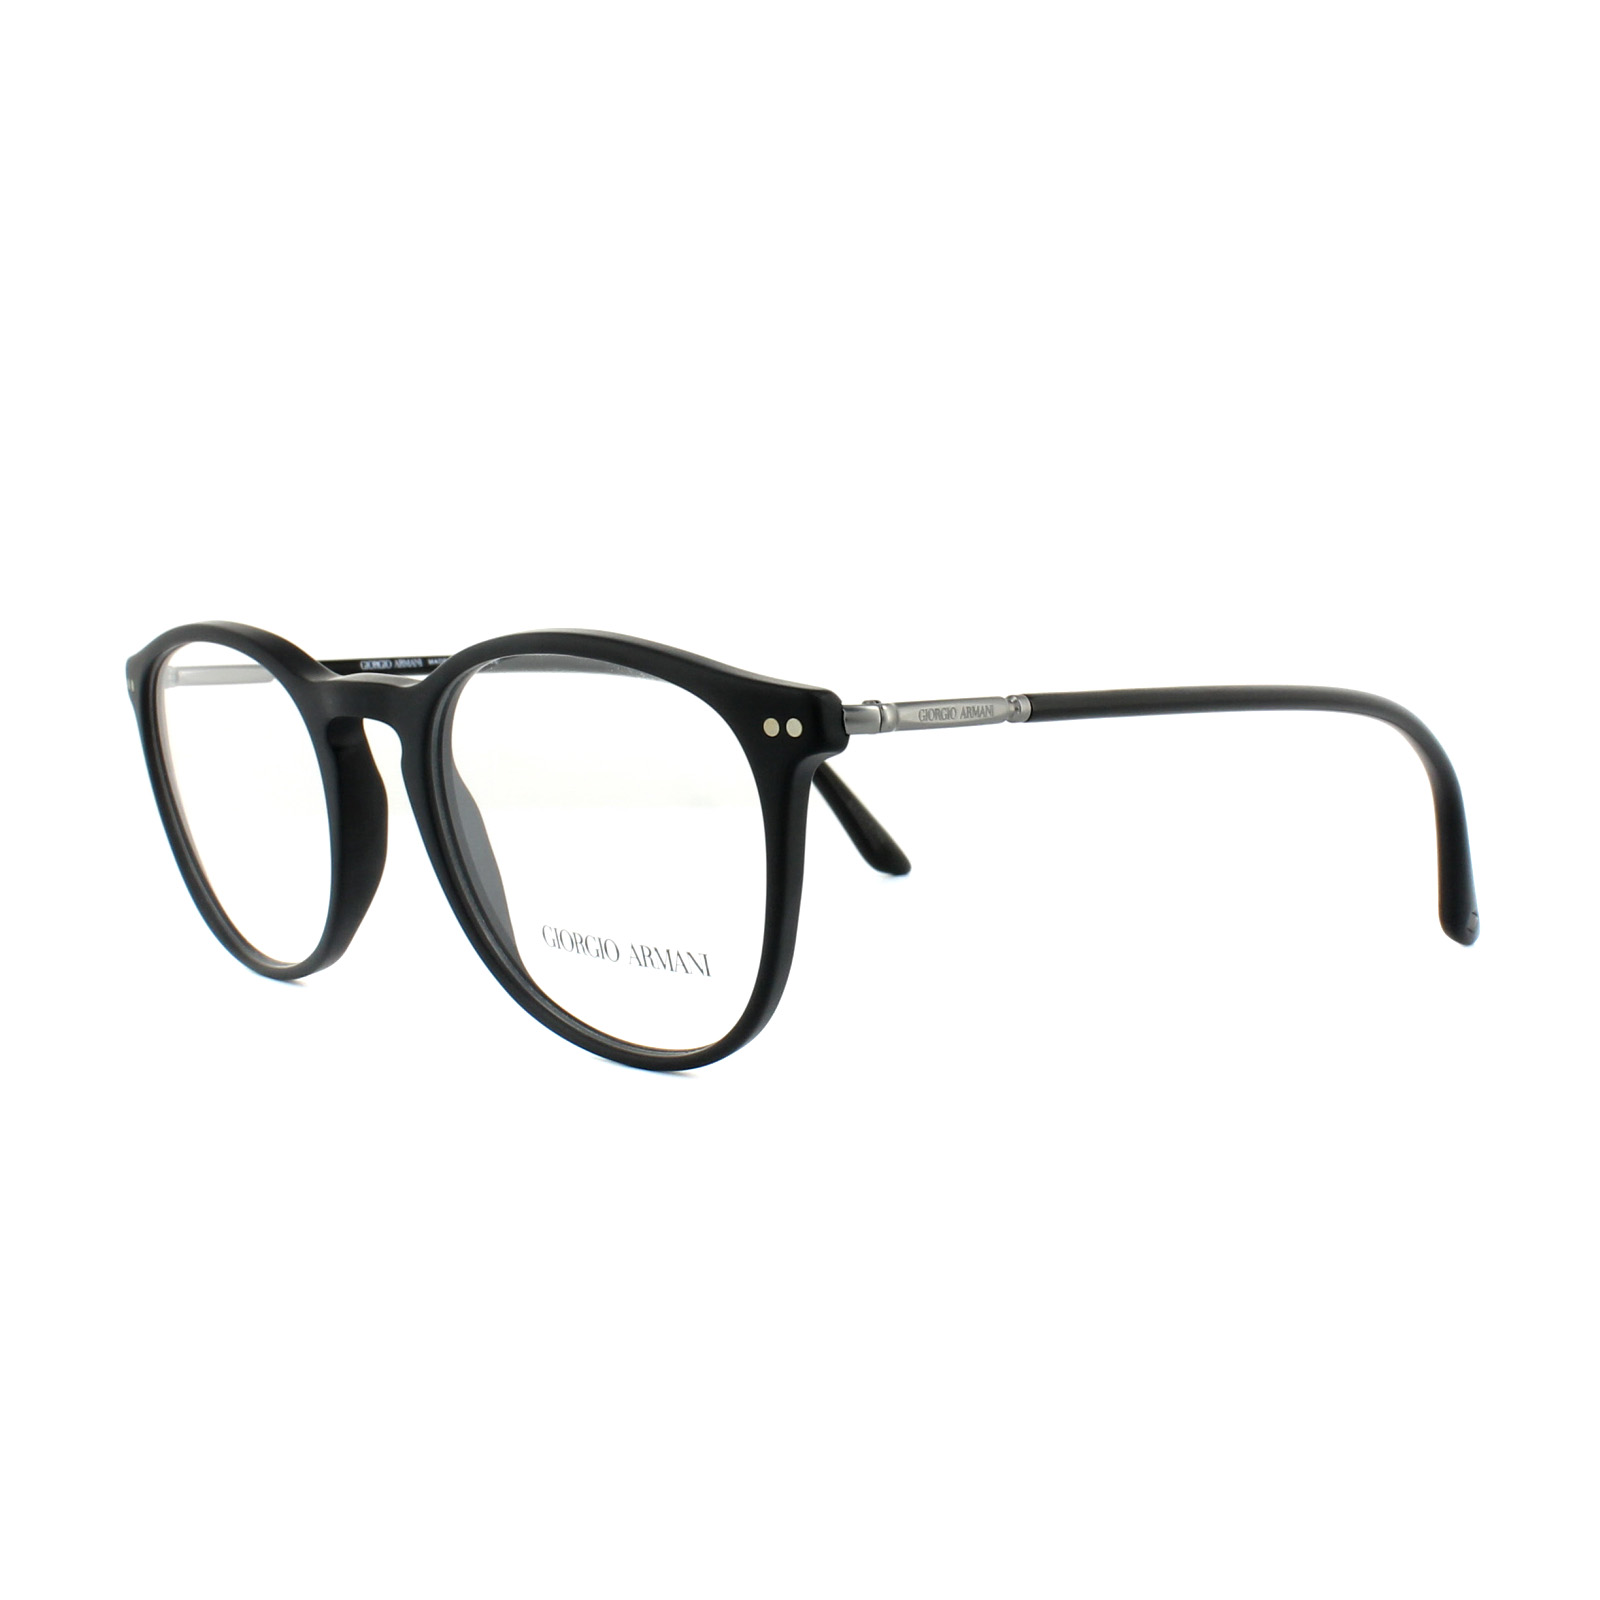 16870825291 Sentinel Giorgio Armani Glasses Frames AR 7125 5042 Matte Black Mens 50mm